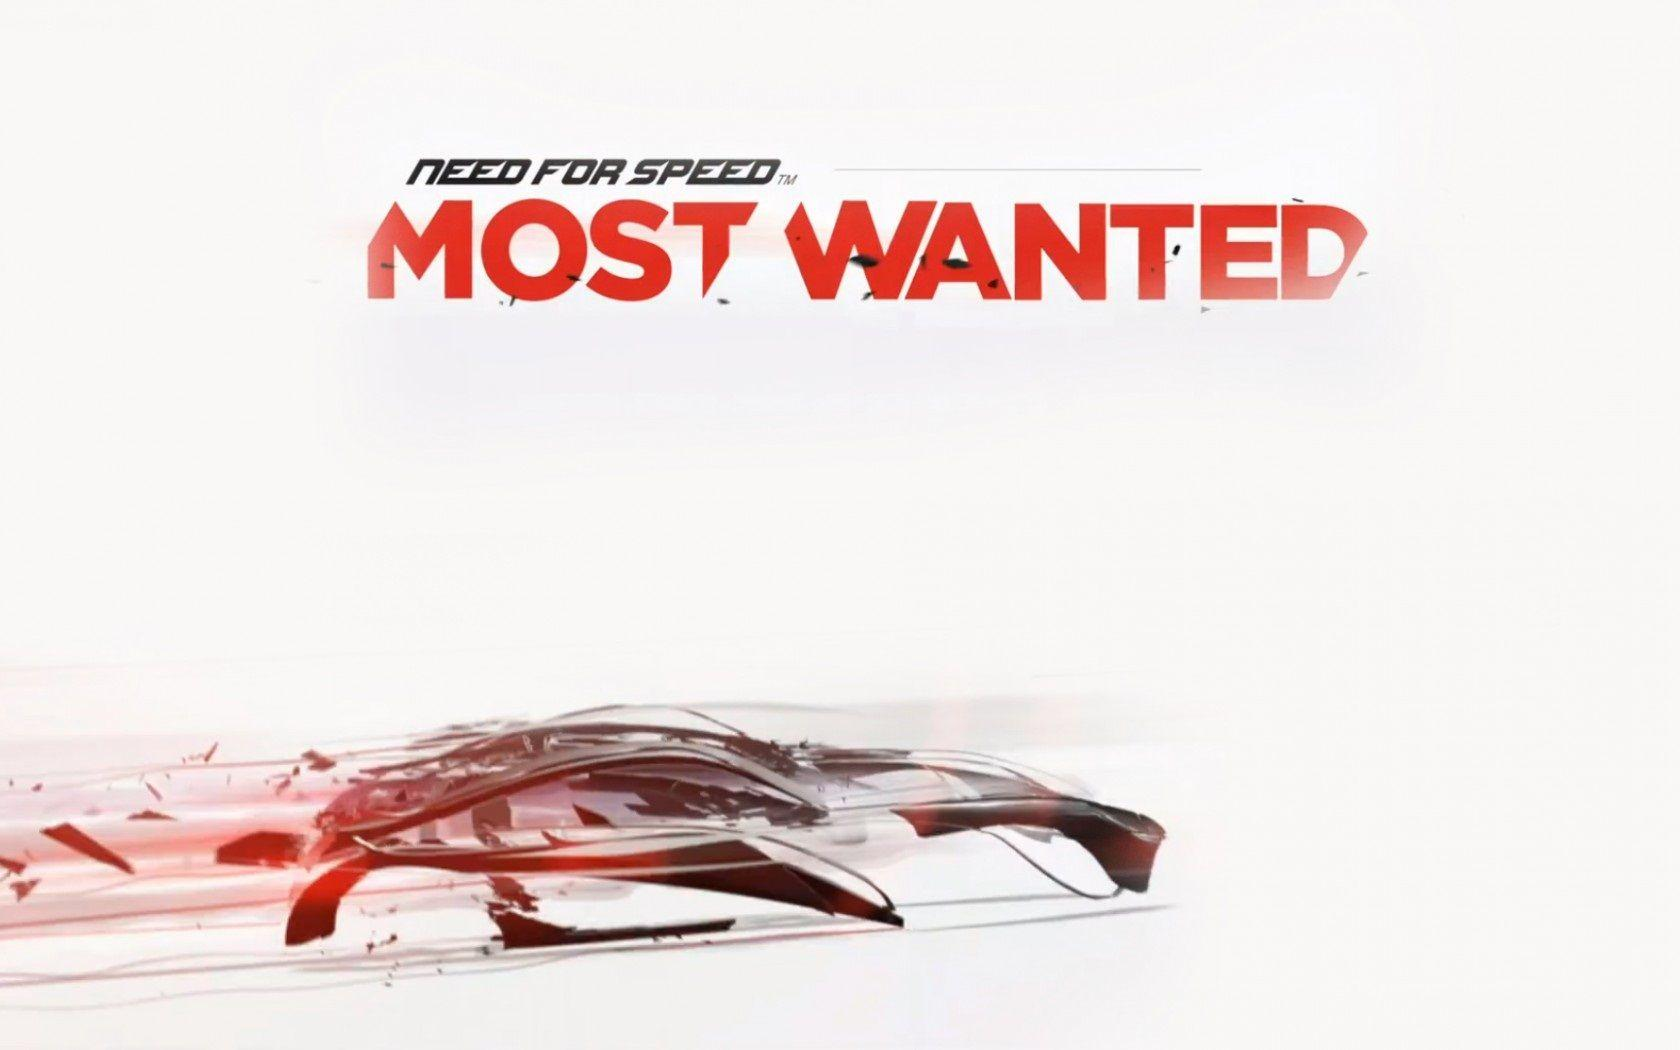 Need For Speed Most Wanted 2012 wallpapers